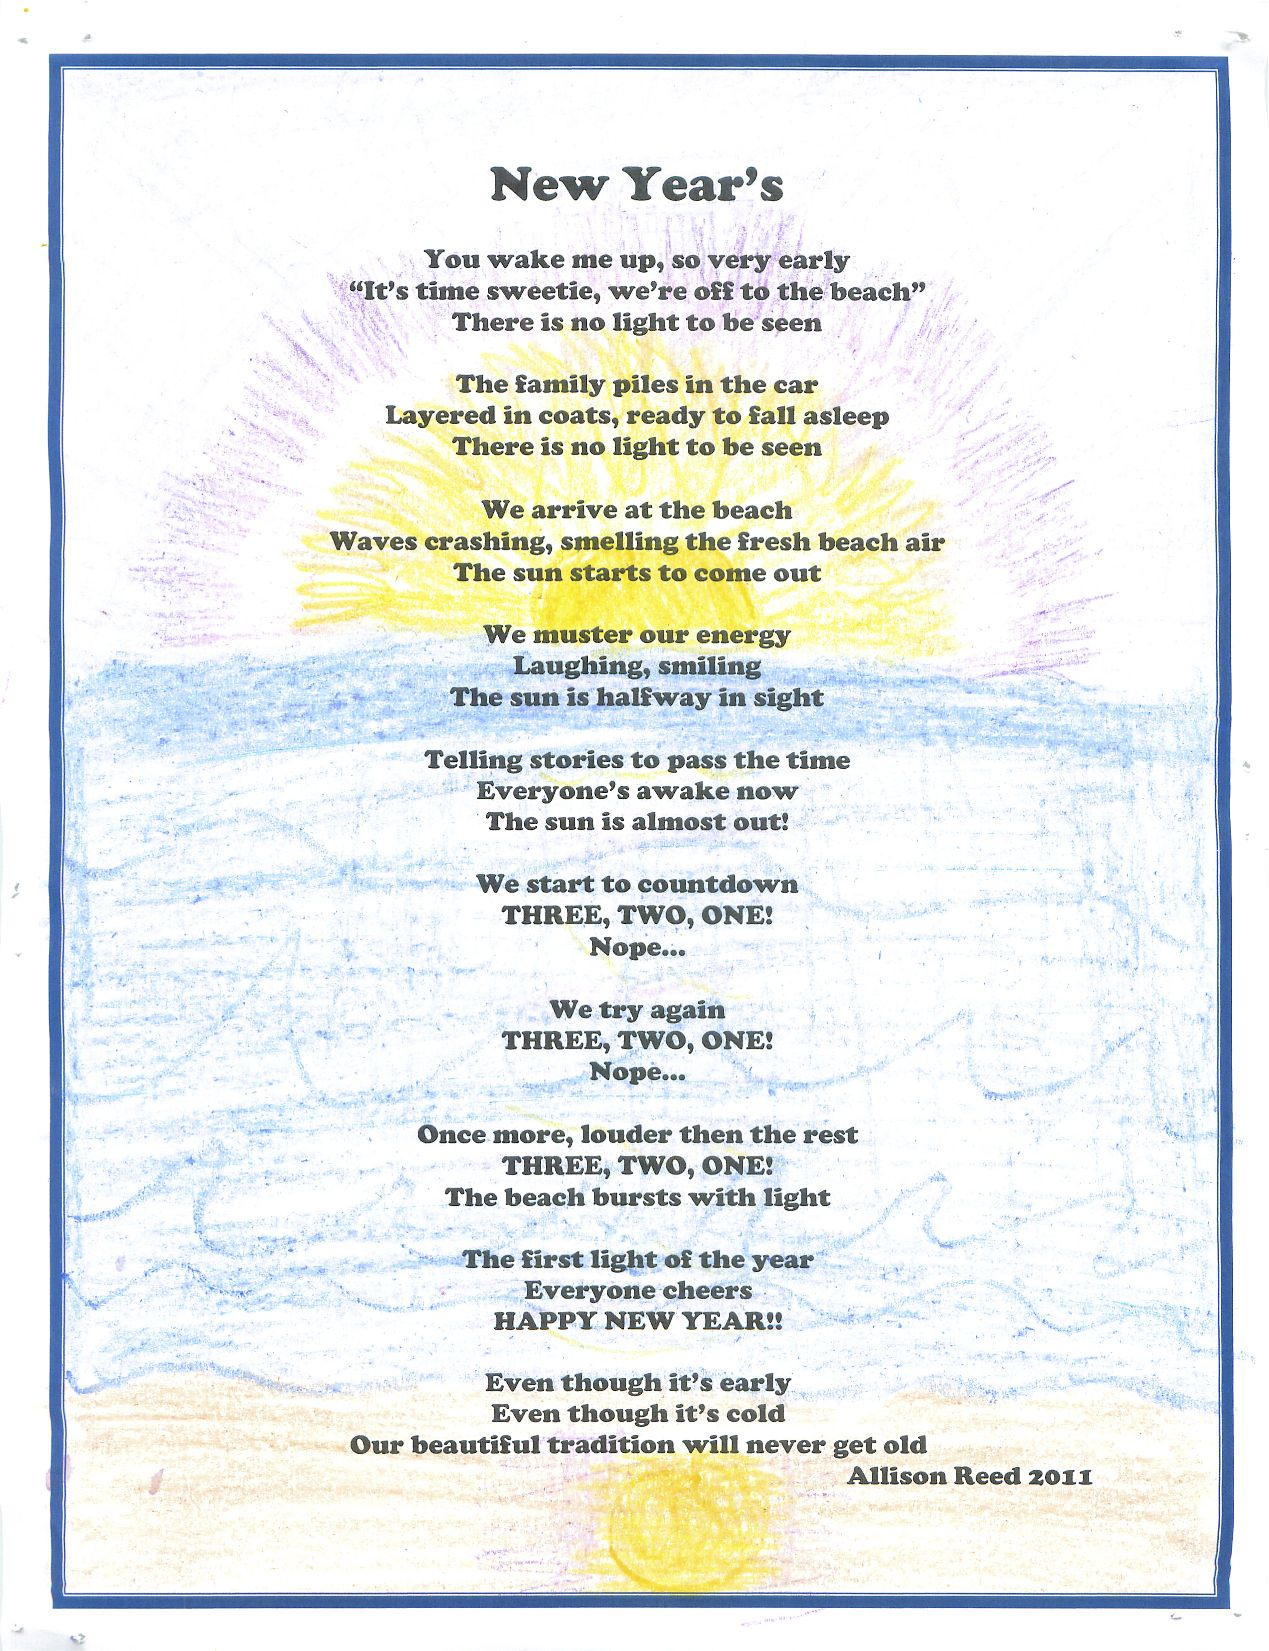 Christmas poems for church programs - New Years Poems New Year S Poem